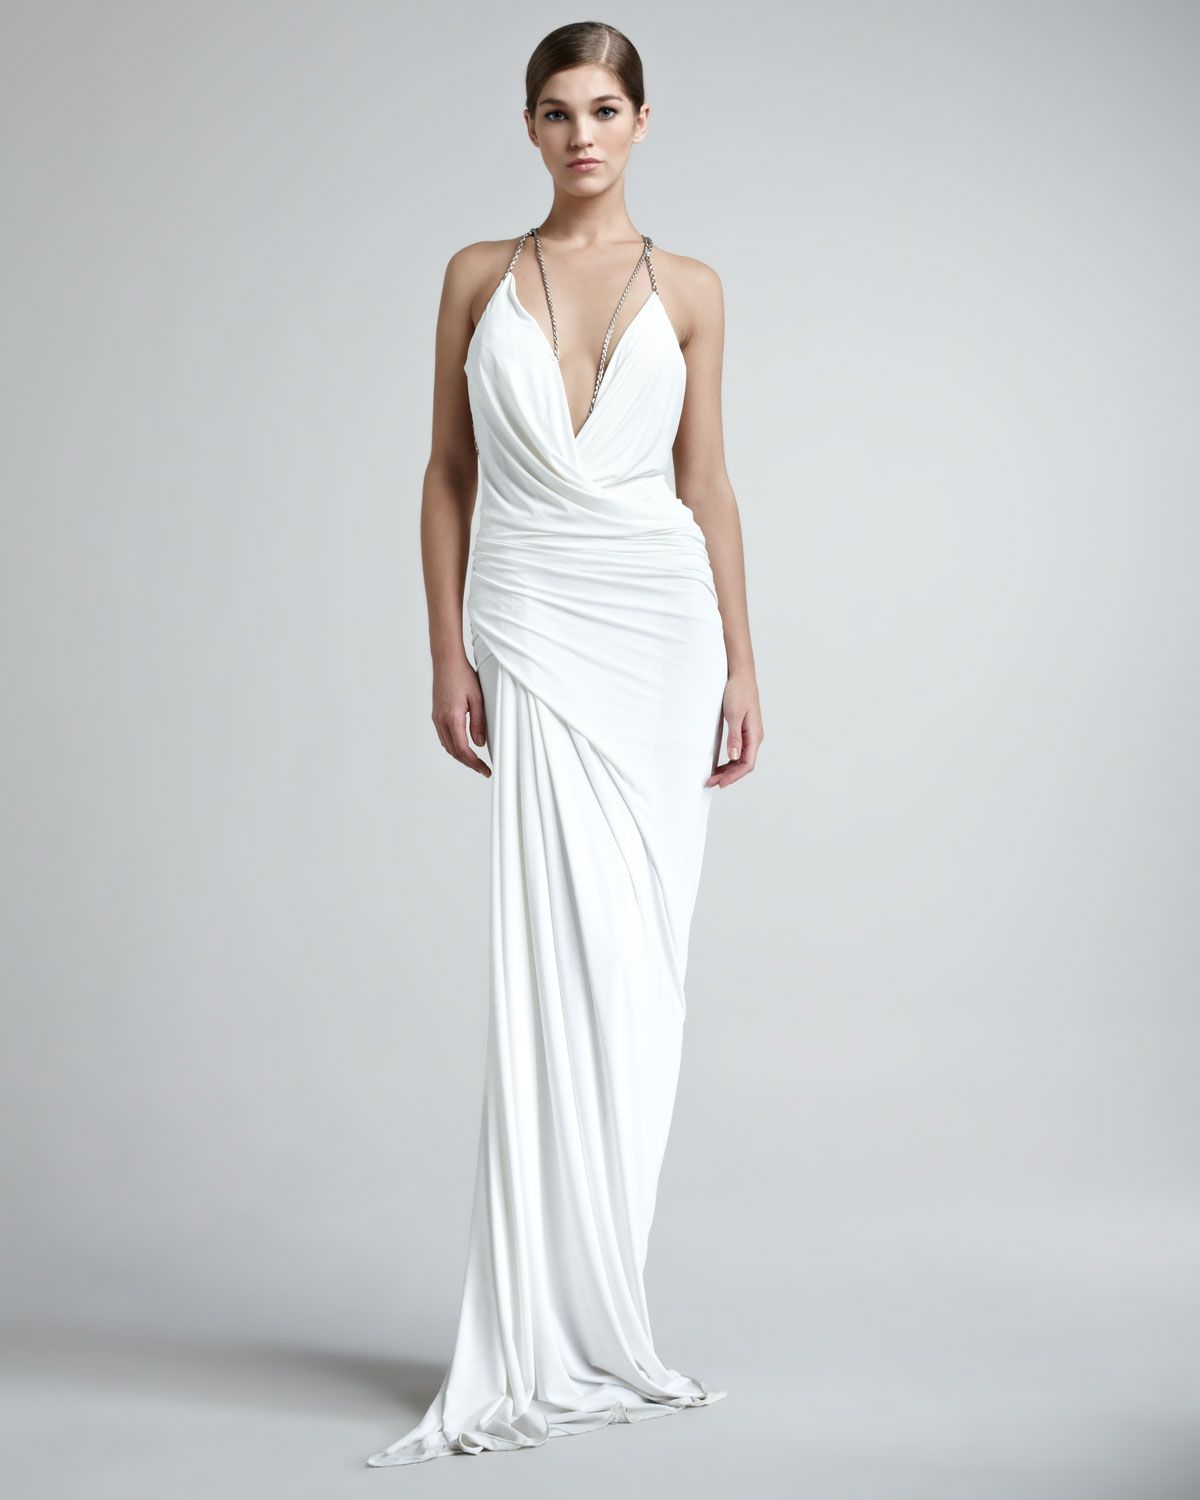 Pin by dani on fashionstyle pinterest donna karan gowns and